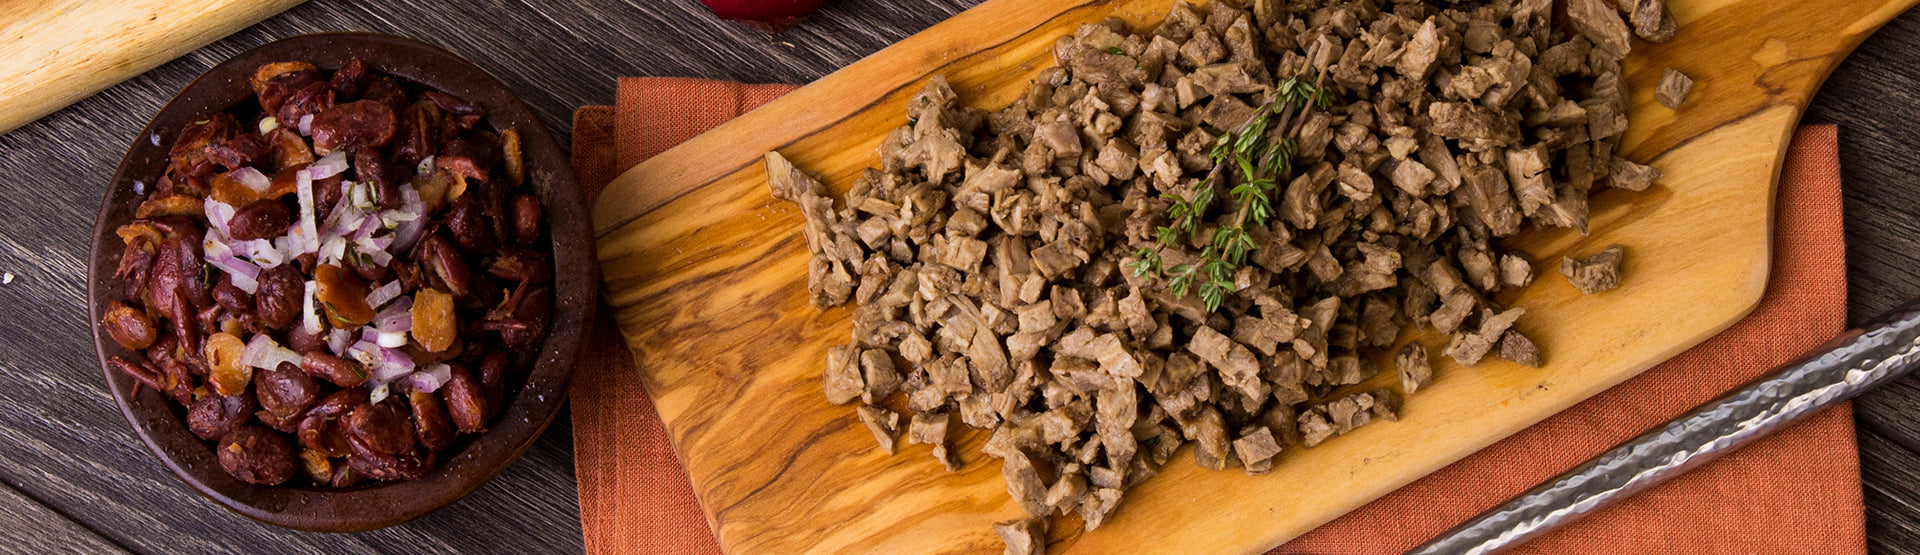 Meat & Protein Kits - Beans and Beef on cutting board